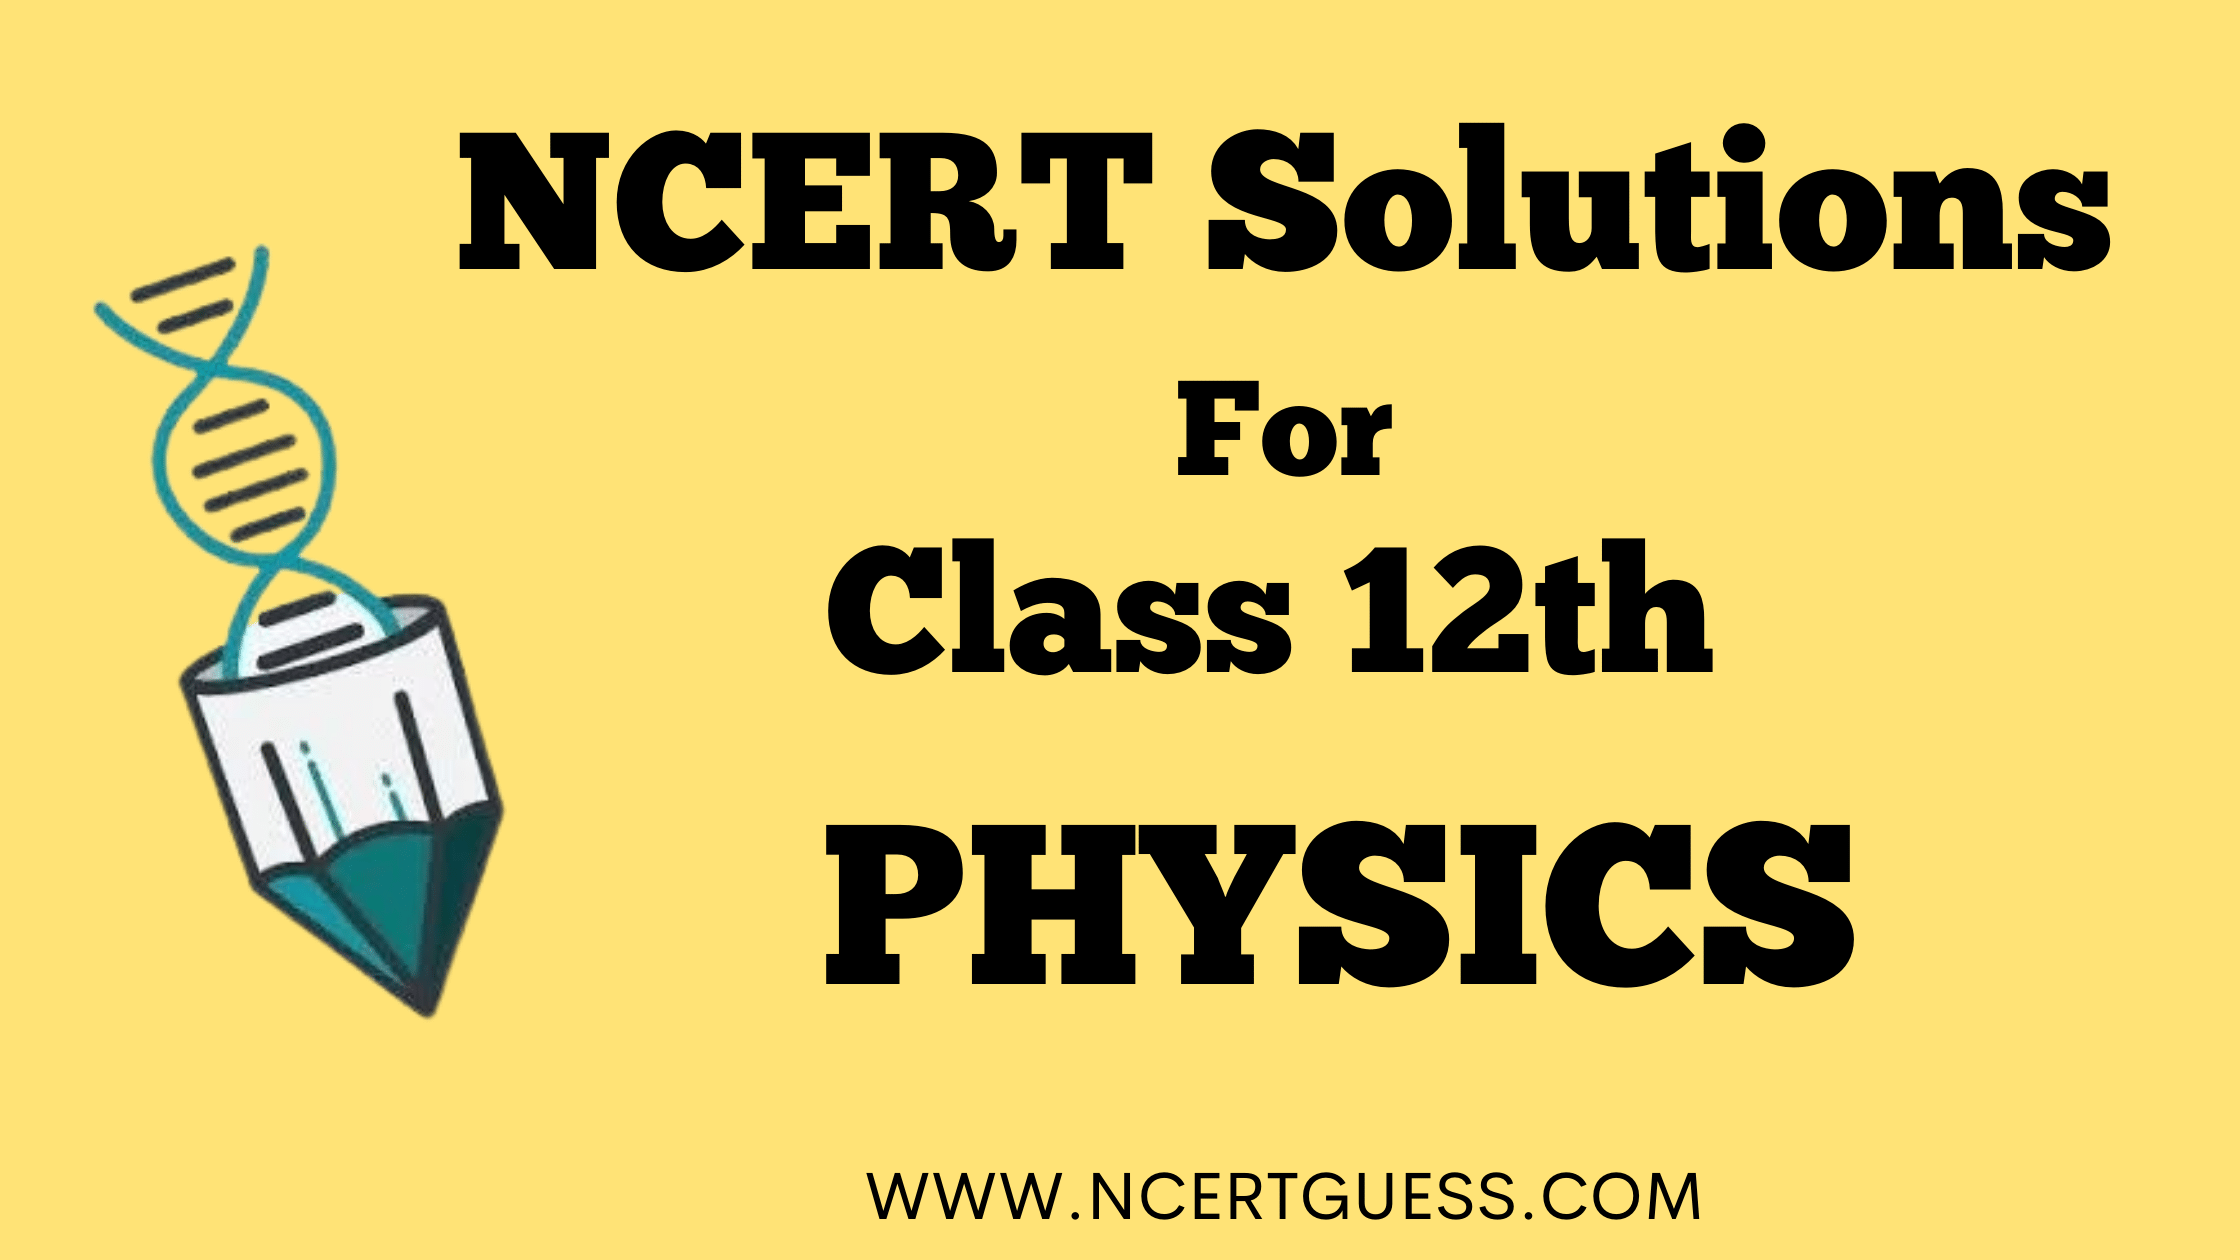 NCERT SOLUTIONS CLASS 12TH PHYSICS